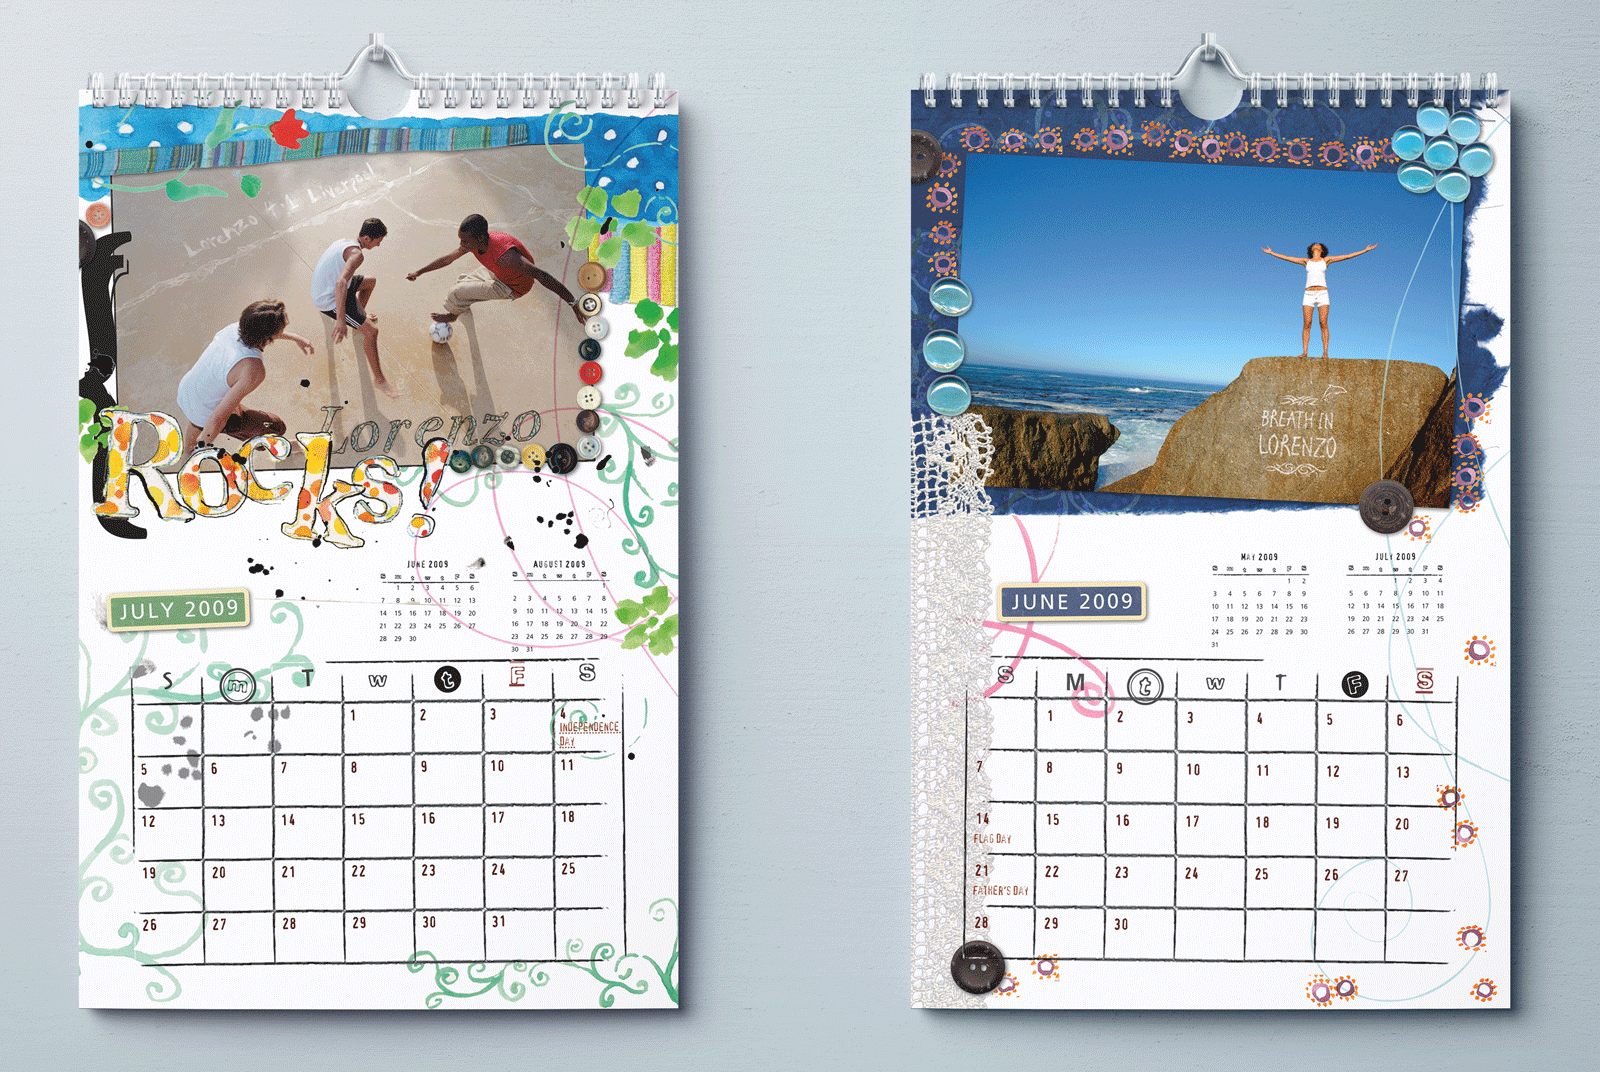 https://bigeyes.co.il/wp-content/uploads/2019/07/highschool-calendar-6.png